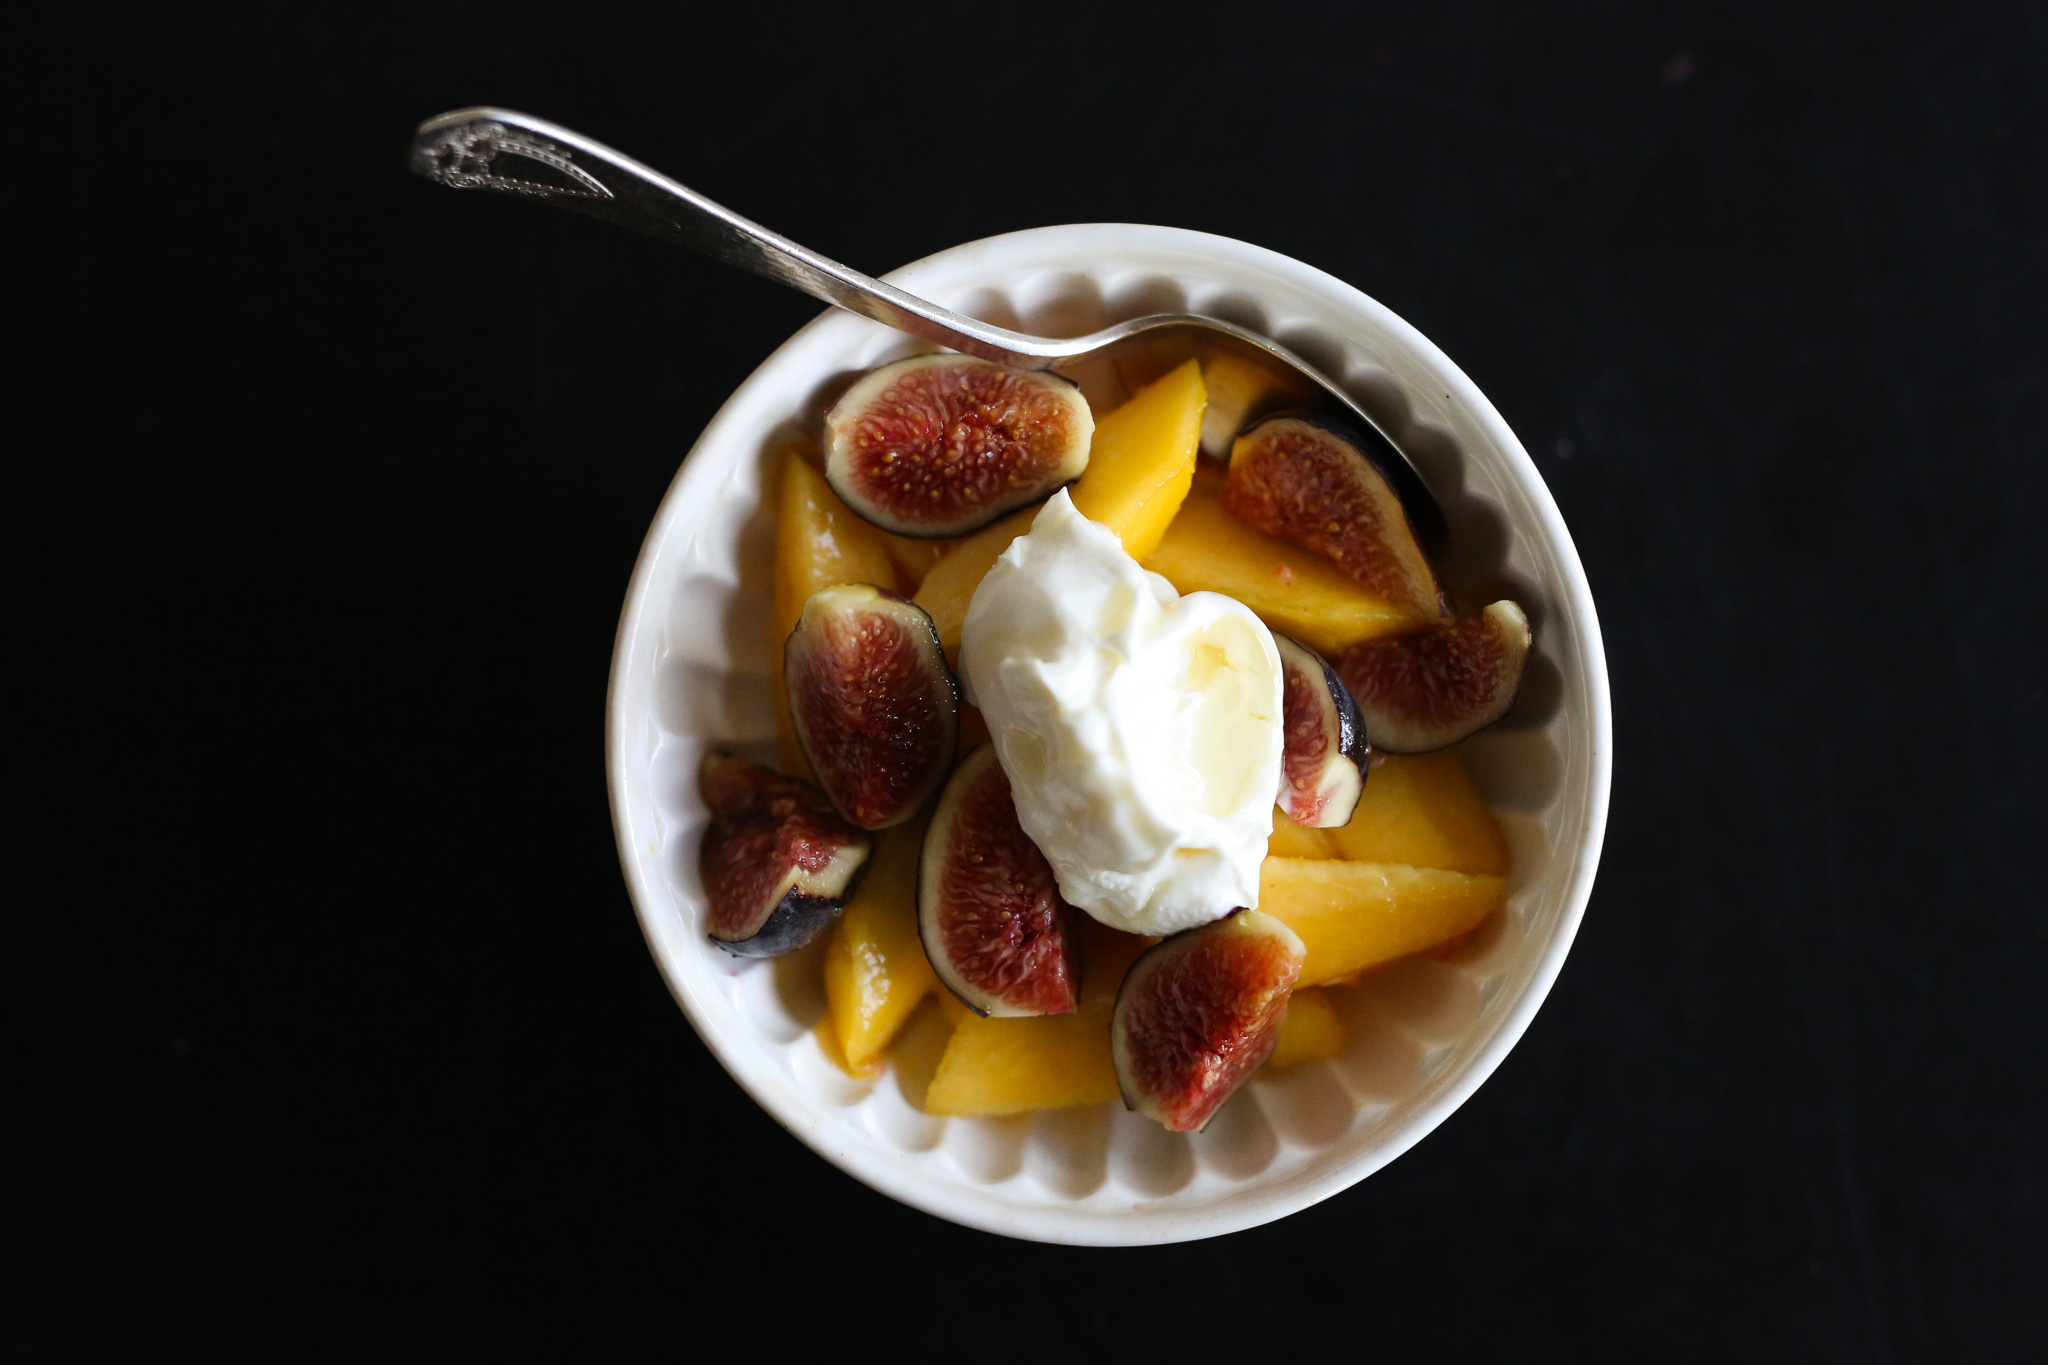 white bowl of peaches and figs with labneh and honey, with silver spoon, on black table